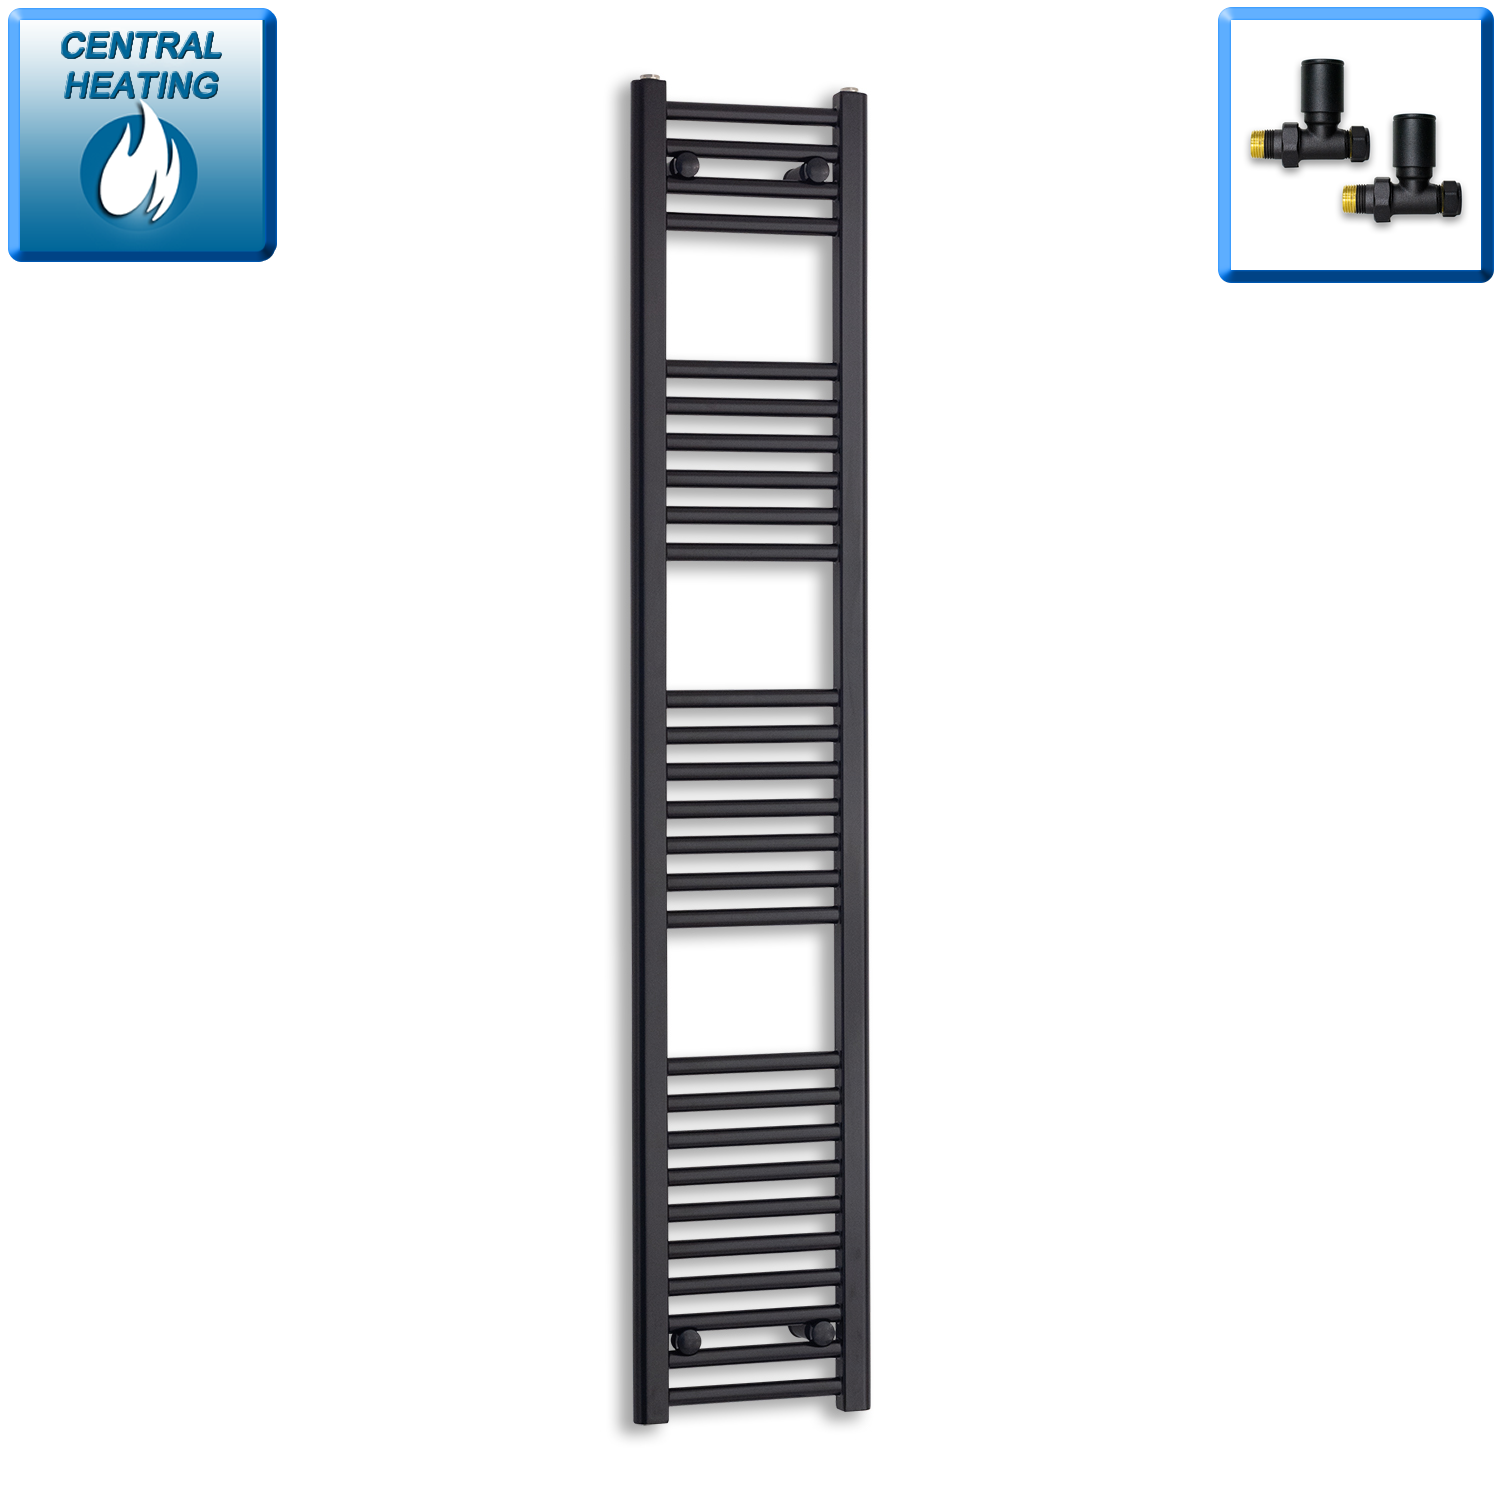 300mm Wide 1600mm High Black Towel Rail Radiator With Straight Valve